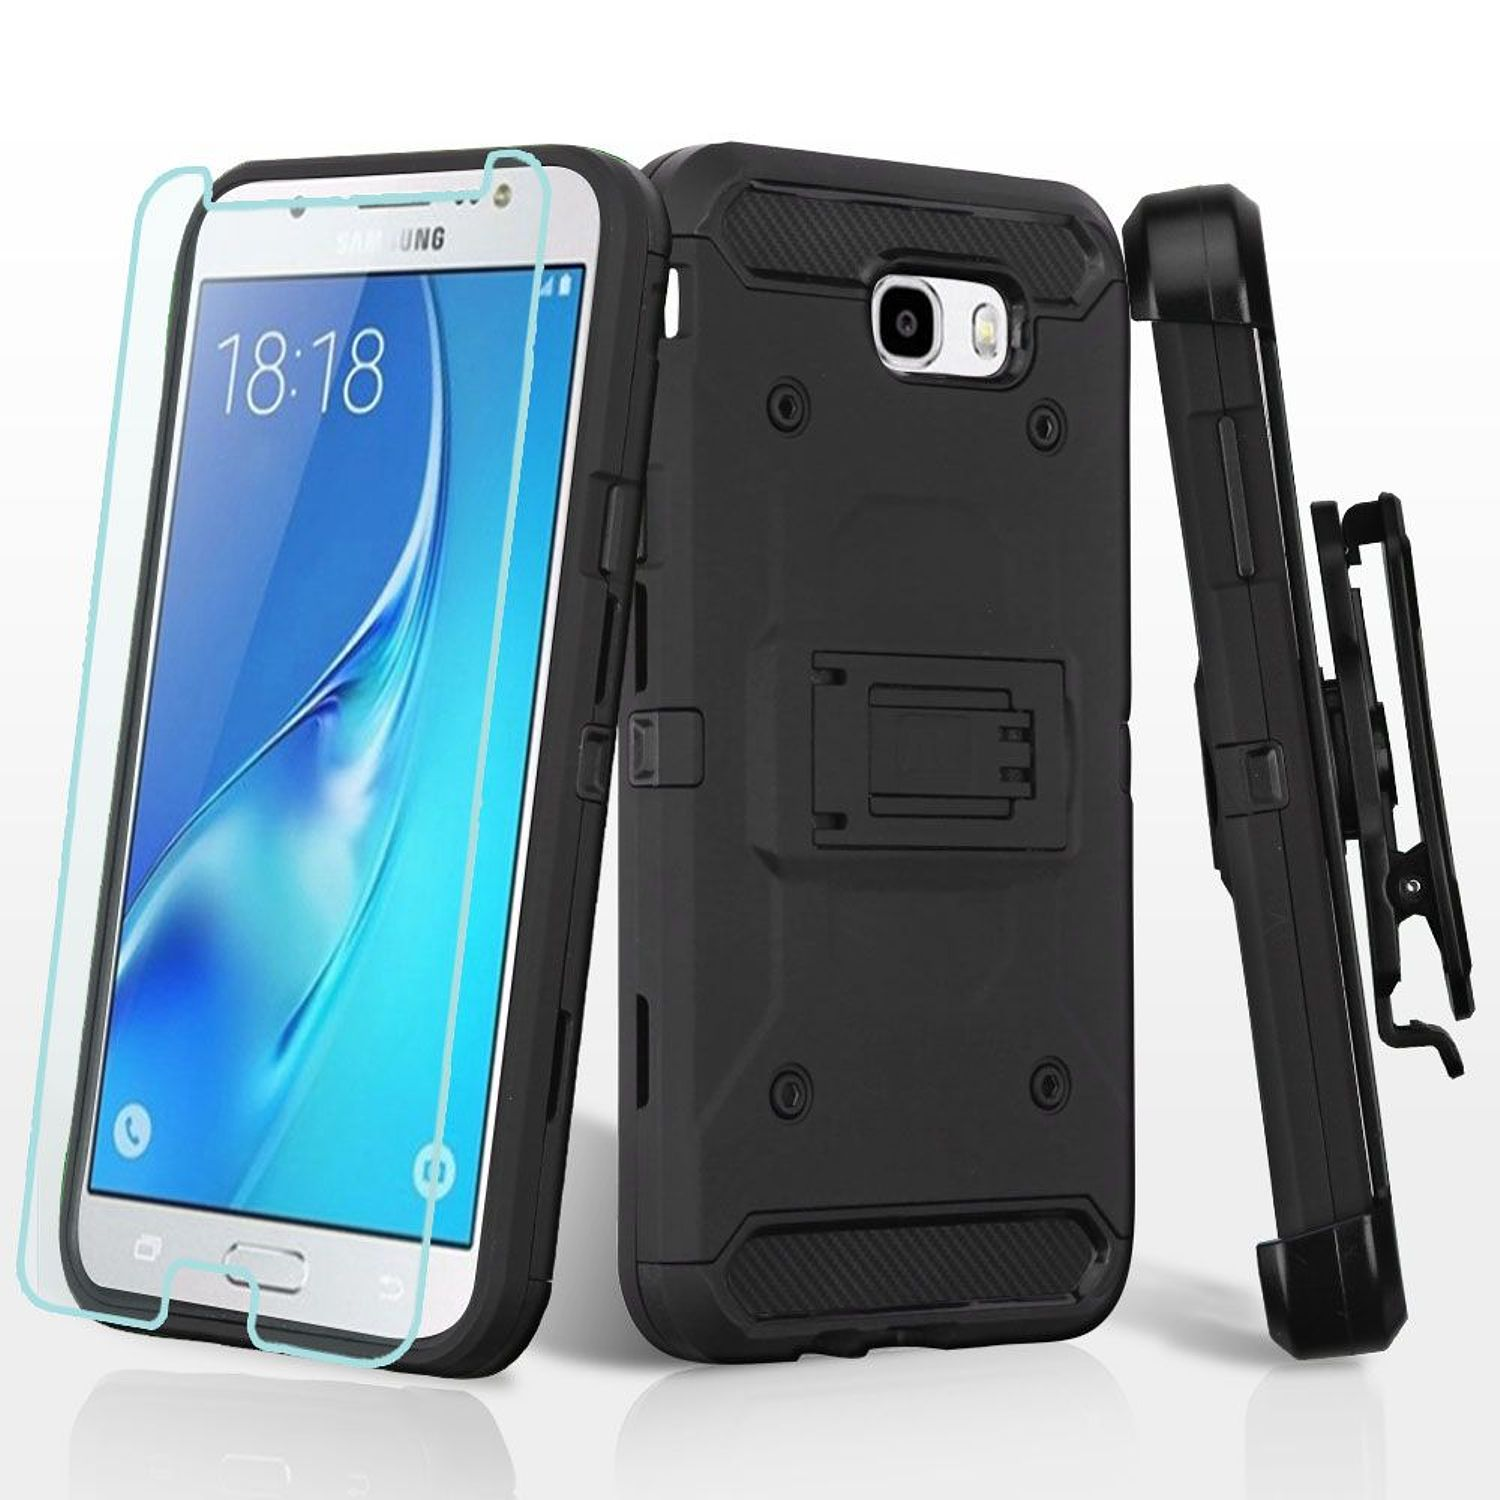 Samsung Galaxy J7 2017 phone case Galaxy J7 Perx case, by Insten 3-in-1 Kinetic Hybrid Holster Case + Tempered Glass... by Insten